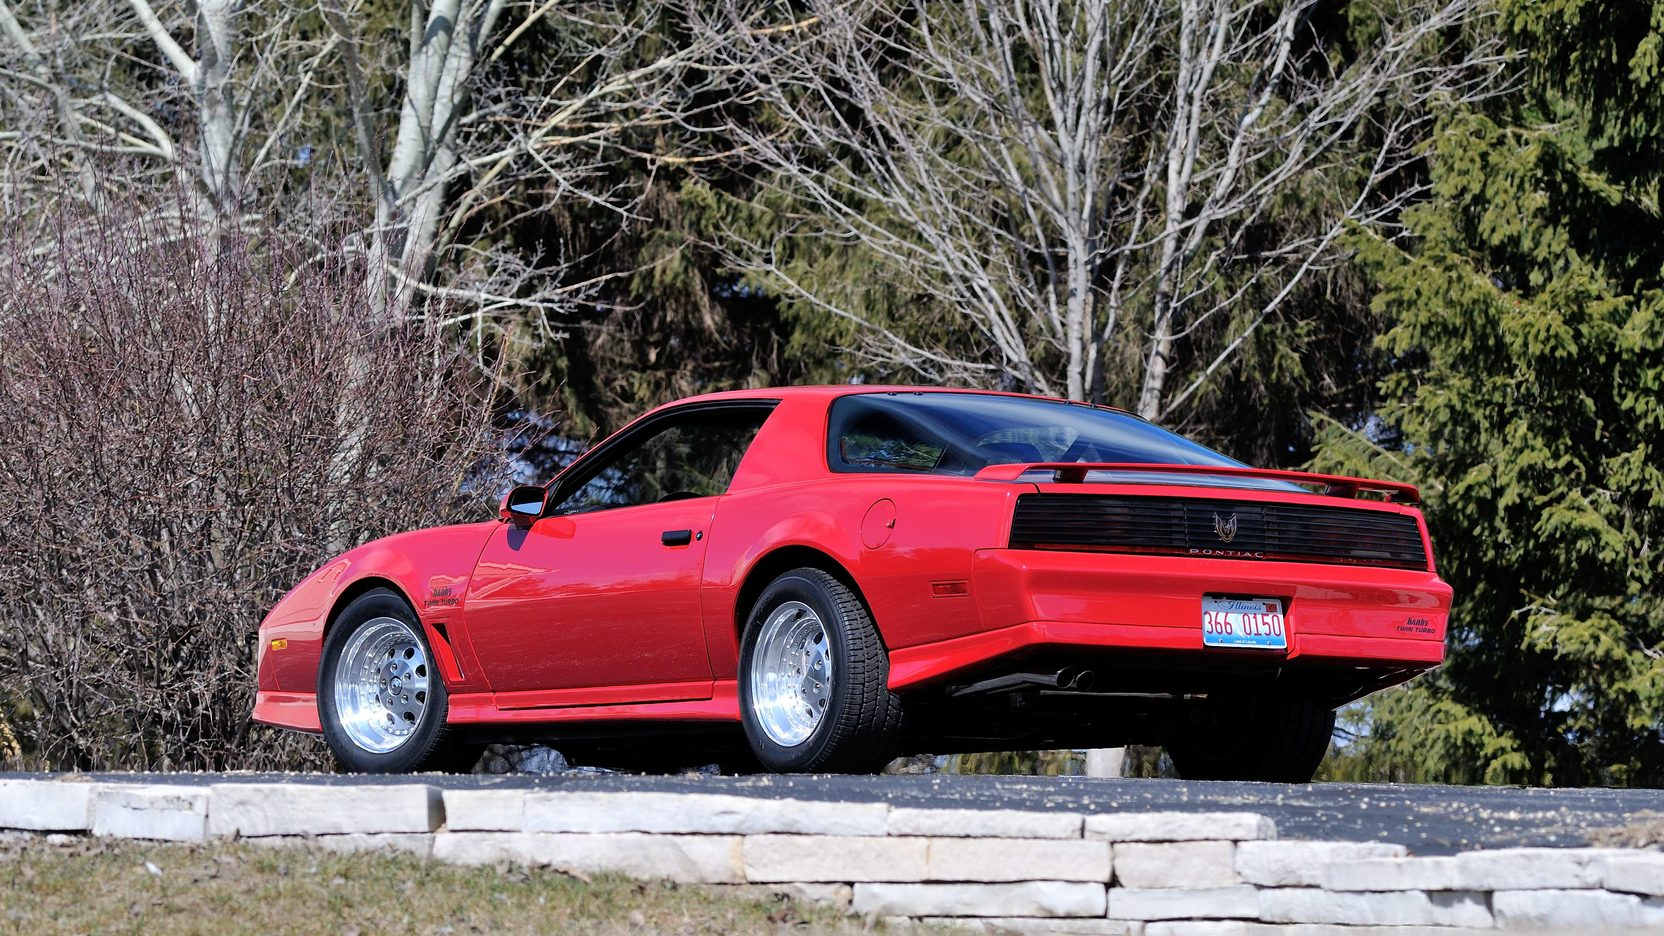 1982 Pontiac Trans Am rear 3/4